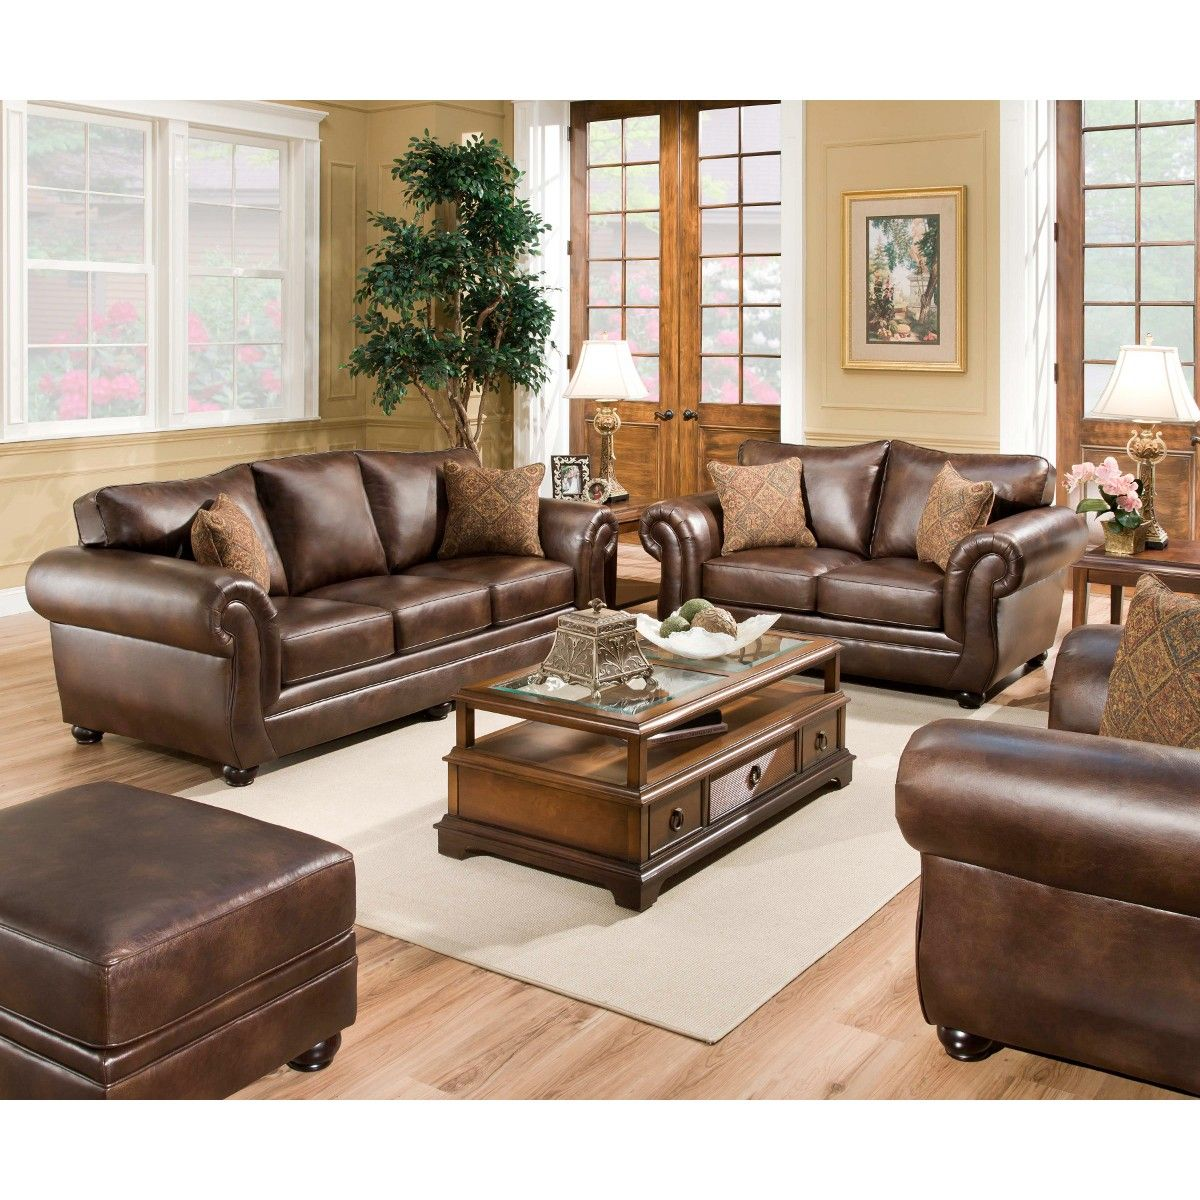 Leather (4280MIRSOFA)